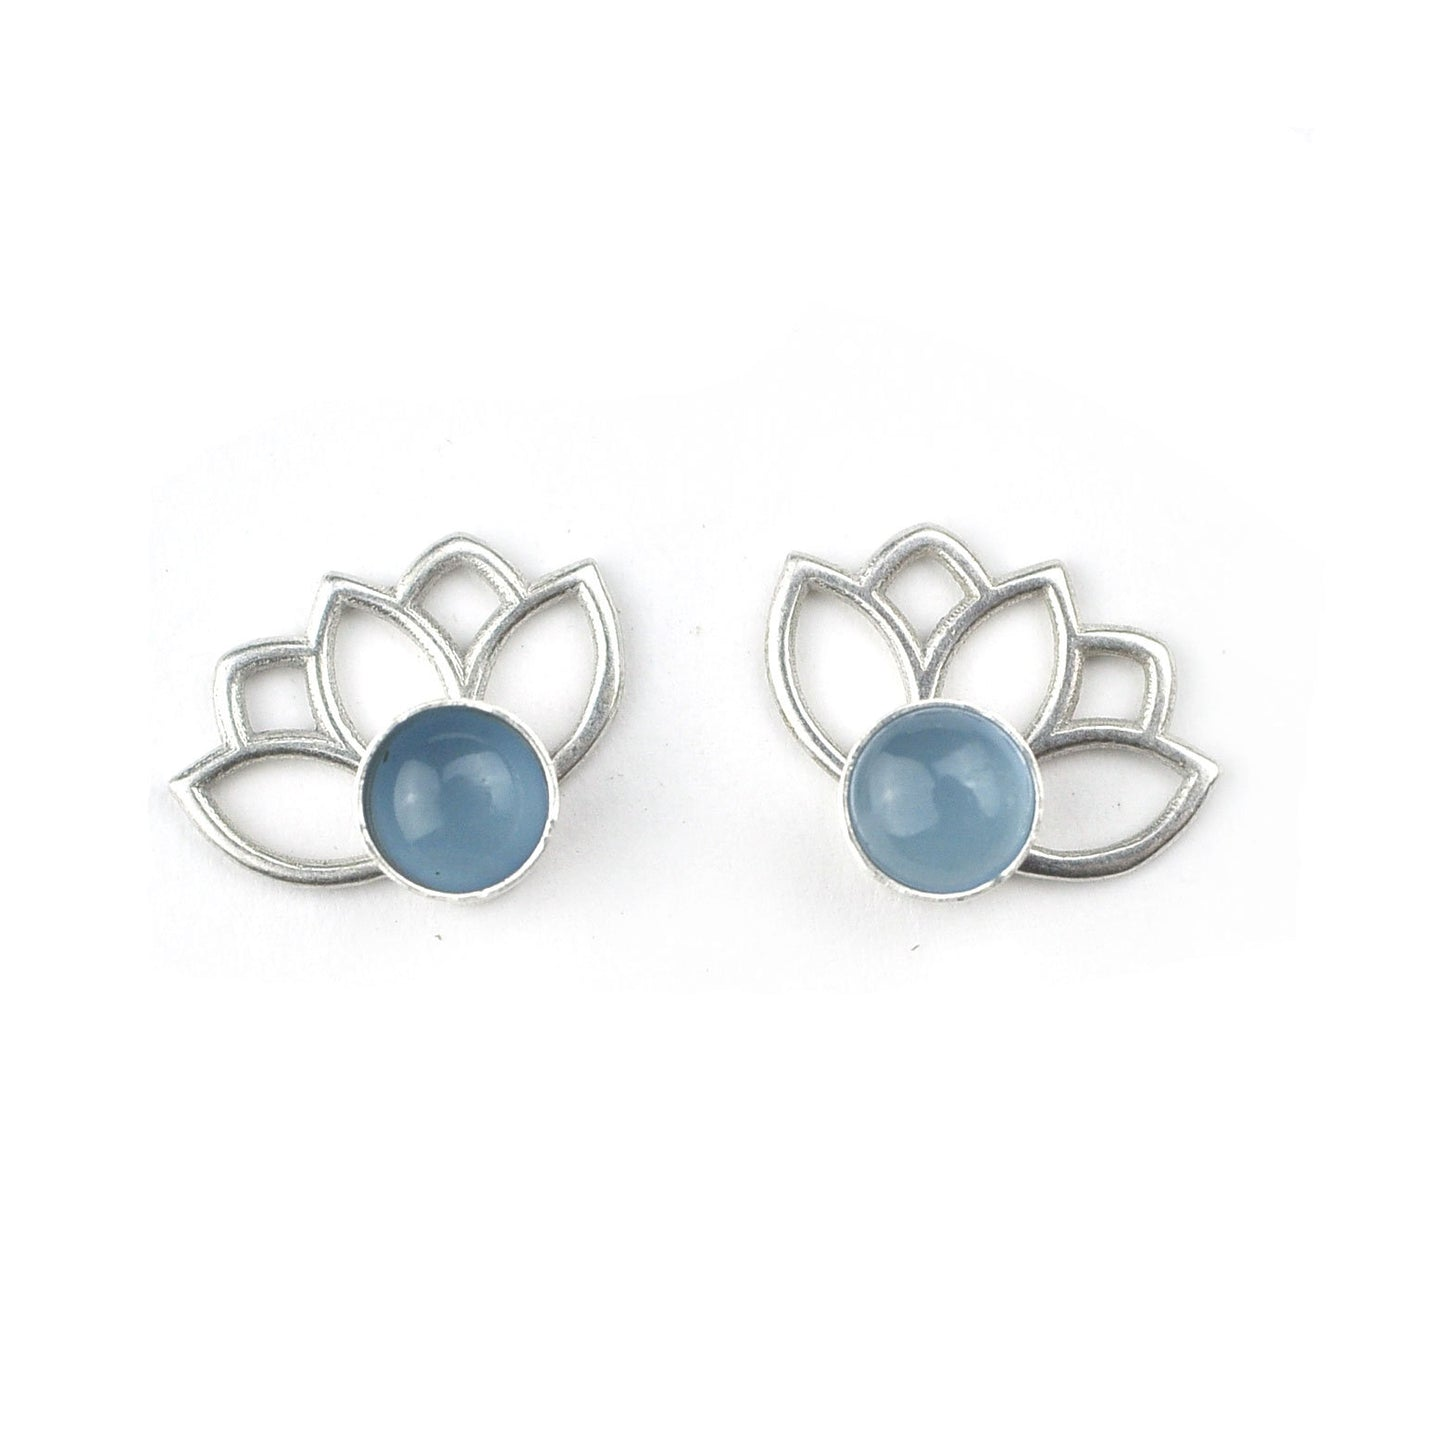 Lotus Aquamarine silver studs, March birthstone